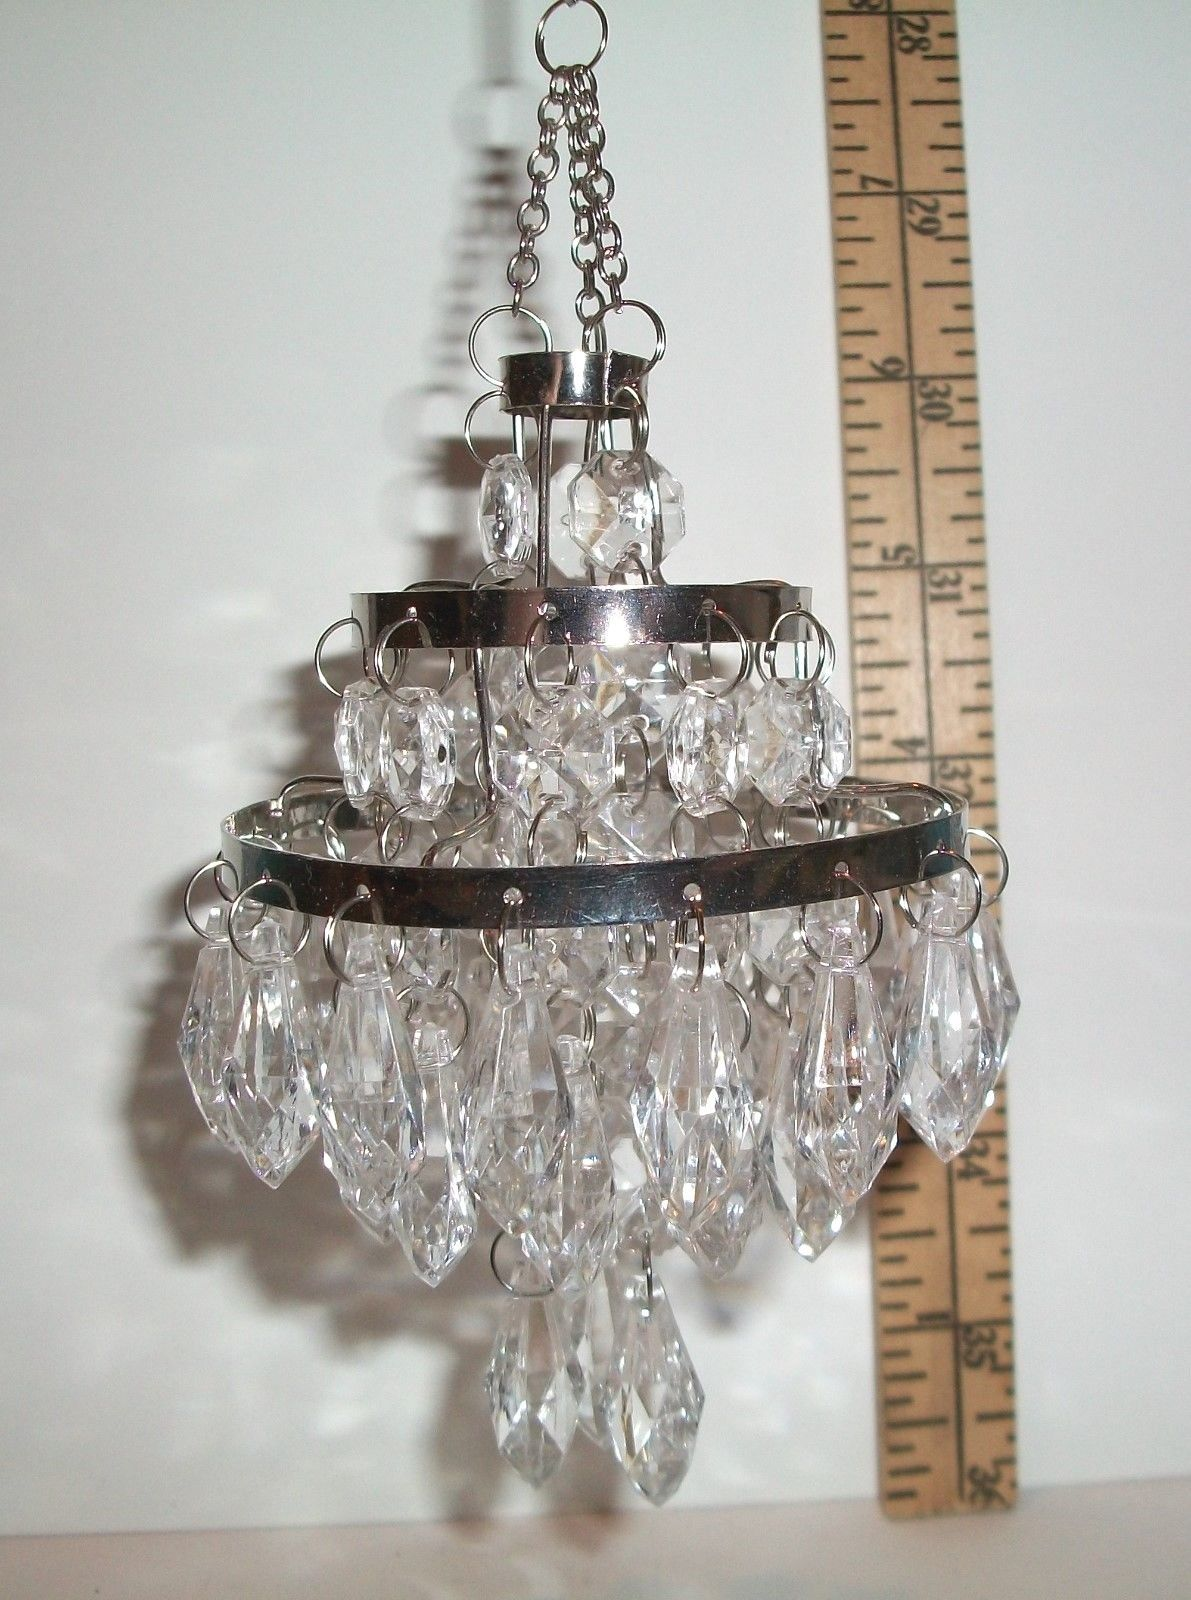 Miniature 1 6 Scale Fashion Doll Dollhouse Hanging Bead Chandelier Accessory 1 Ebay